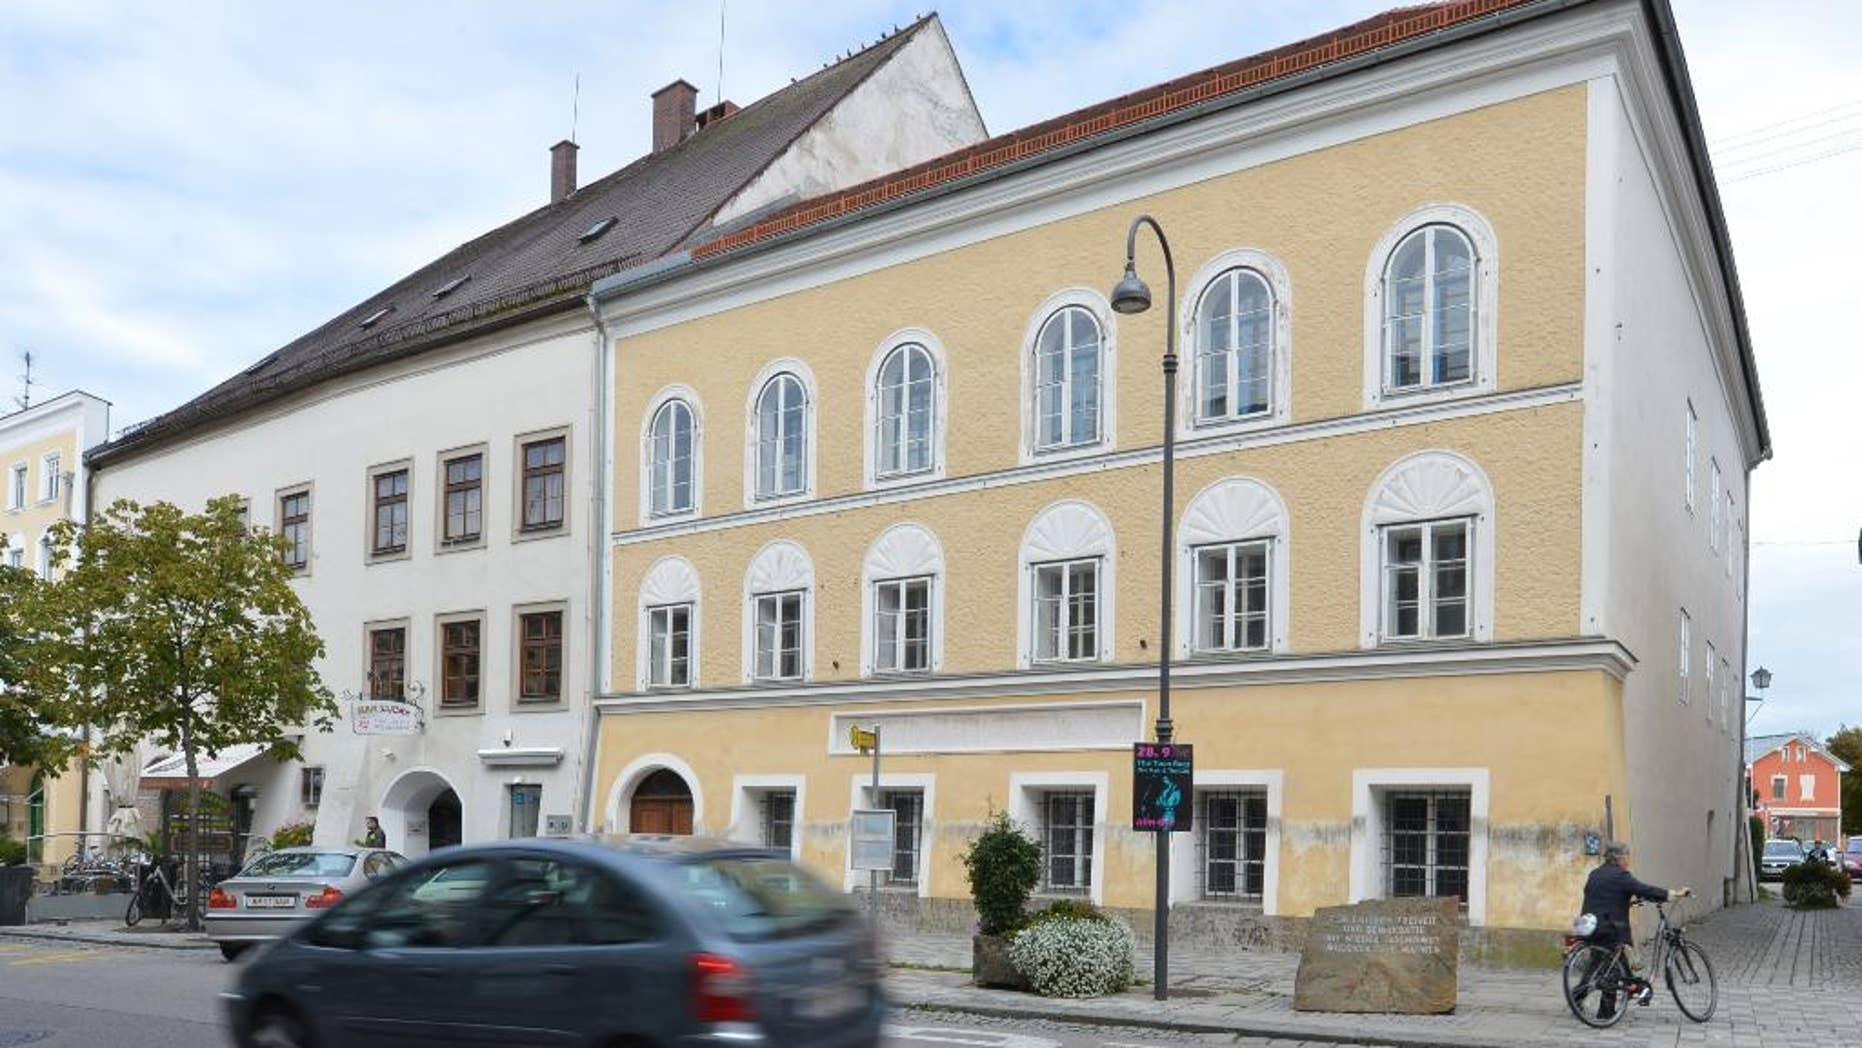 Sept. 27, 2012: This file photo shows an exterior view of Adolf Hitler's birth house in Braunau am Inn, Austria. The Austrian government is looking at options that would allow it to expropriate the house where Hitler spent his early childhood as it seeks to end a dispute with the dwelling's owner over its use, officials said.